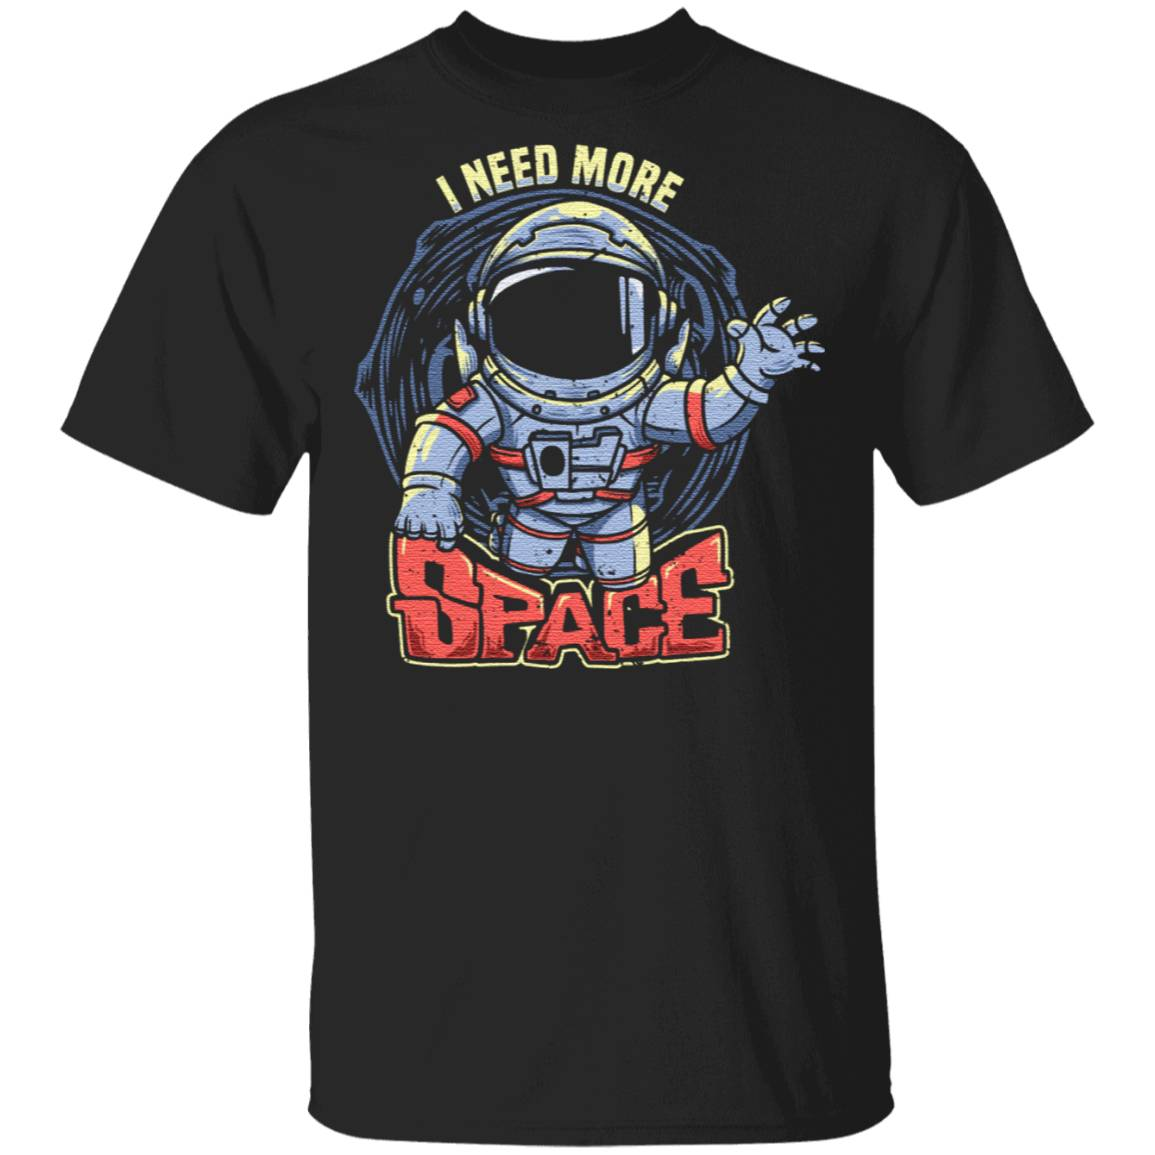 i need more space with astronaut vintage - spaceman quotes T-Shirt